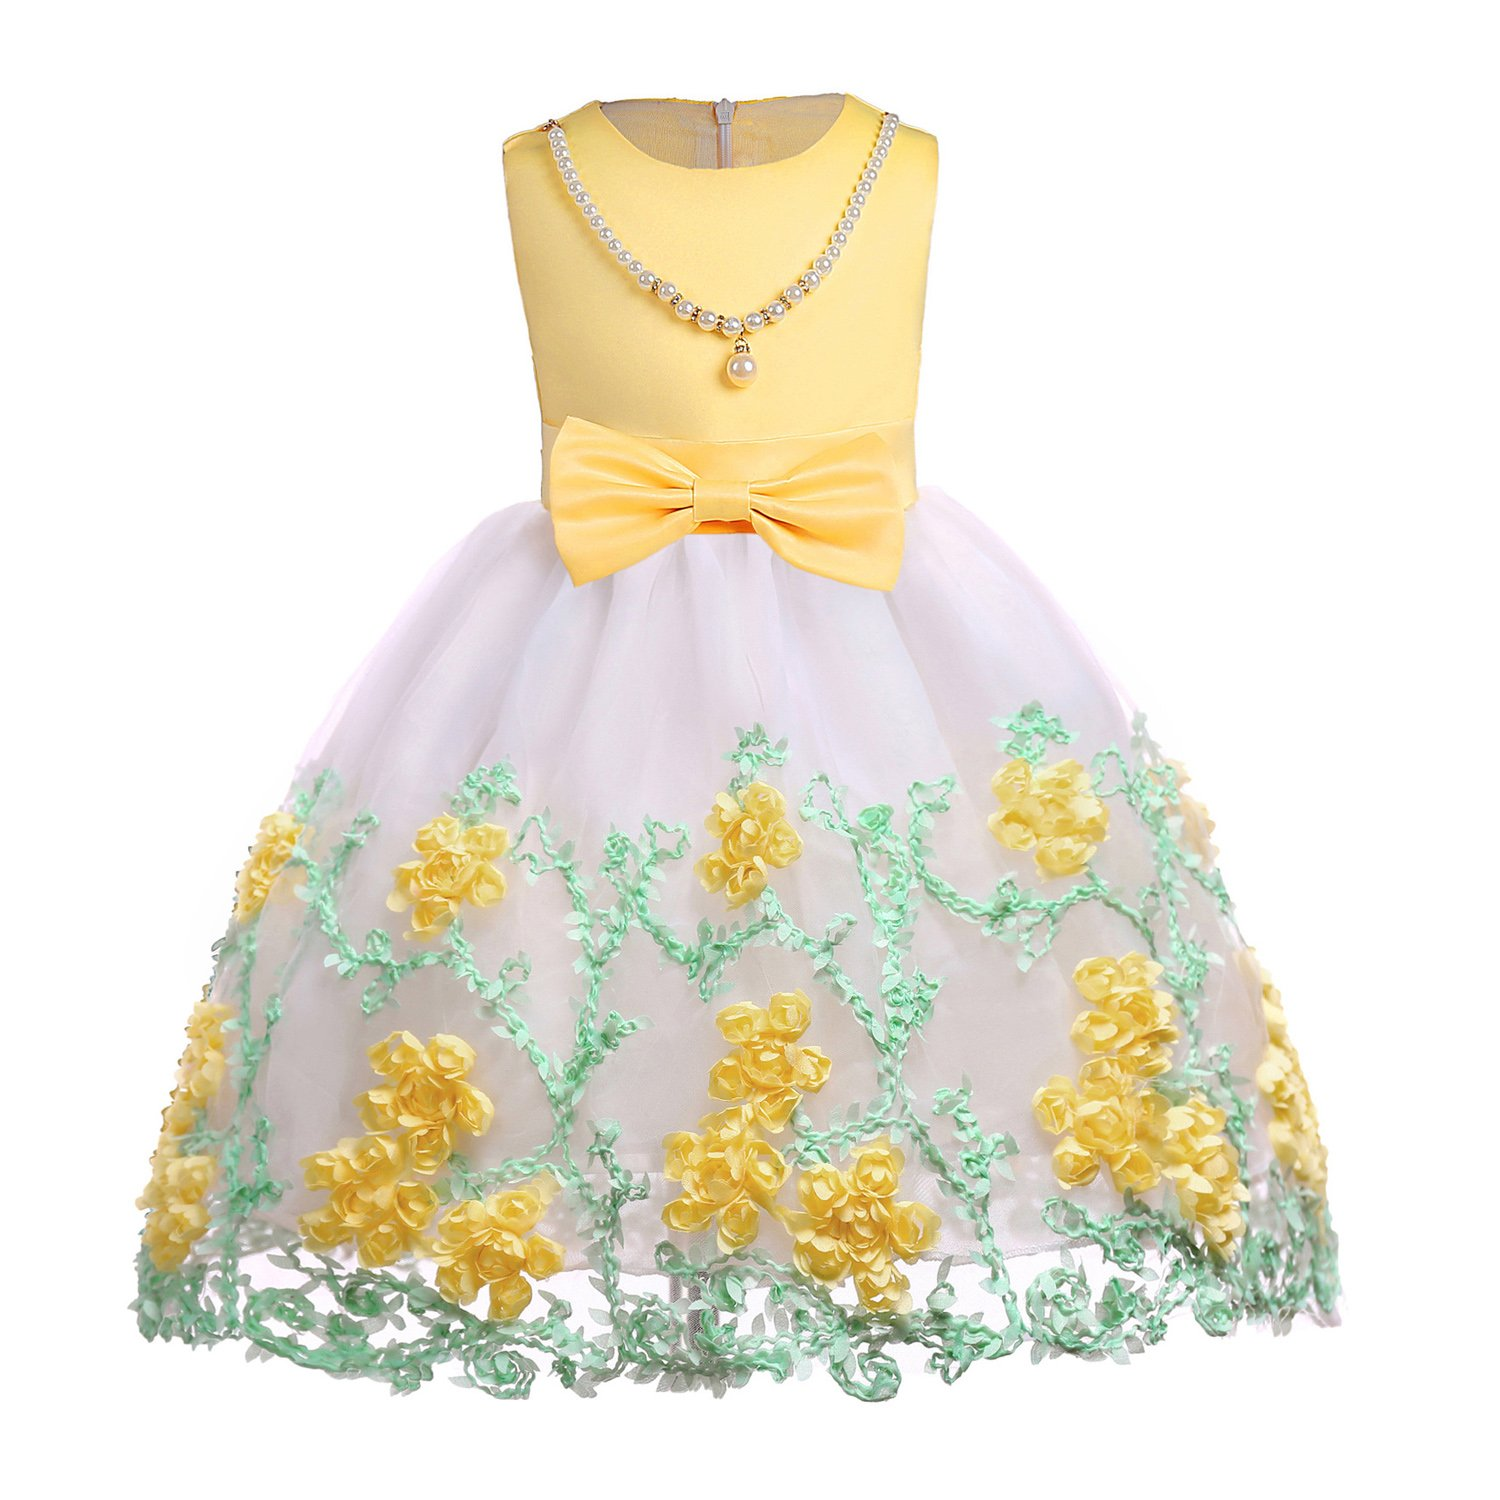 445301769b1d Elegant princess dress, filling high-end temperament, make your baby become  more fashionable, attractive, beautiful. Material:70% Polyester,30% Cotton